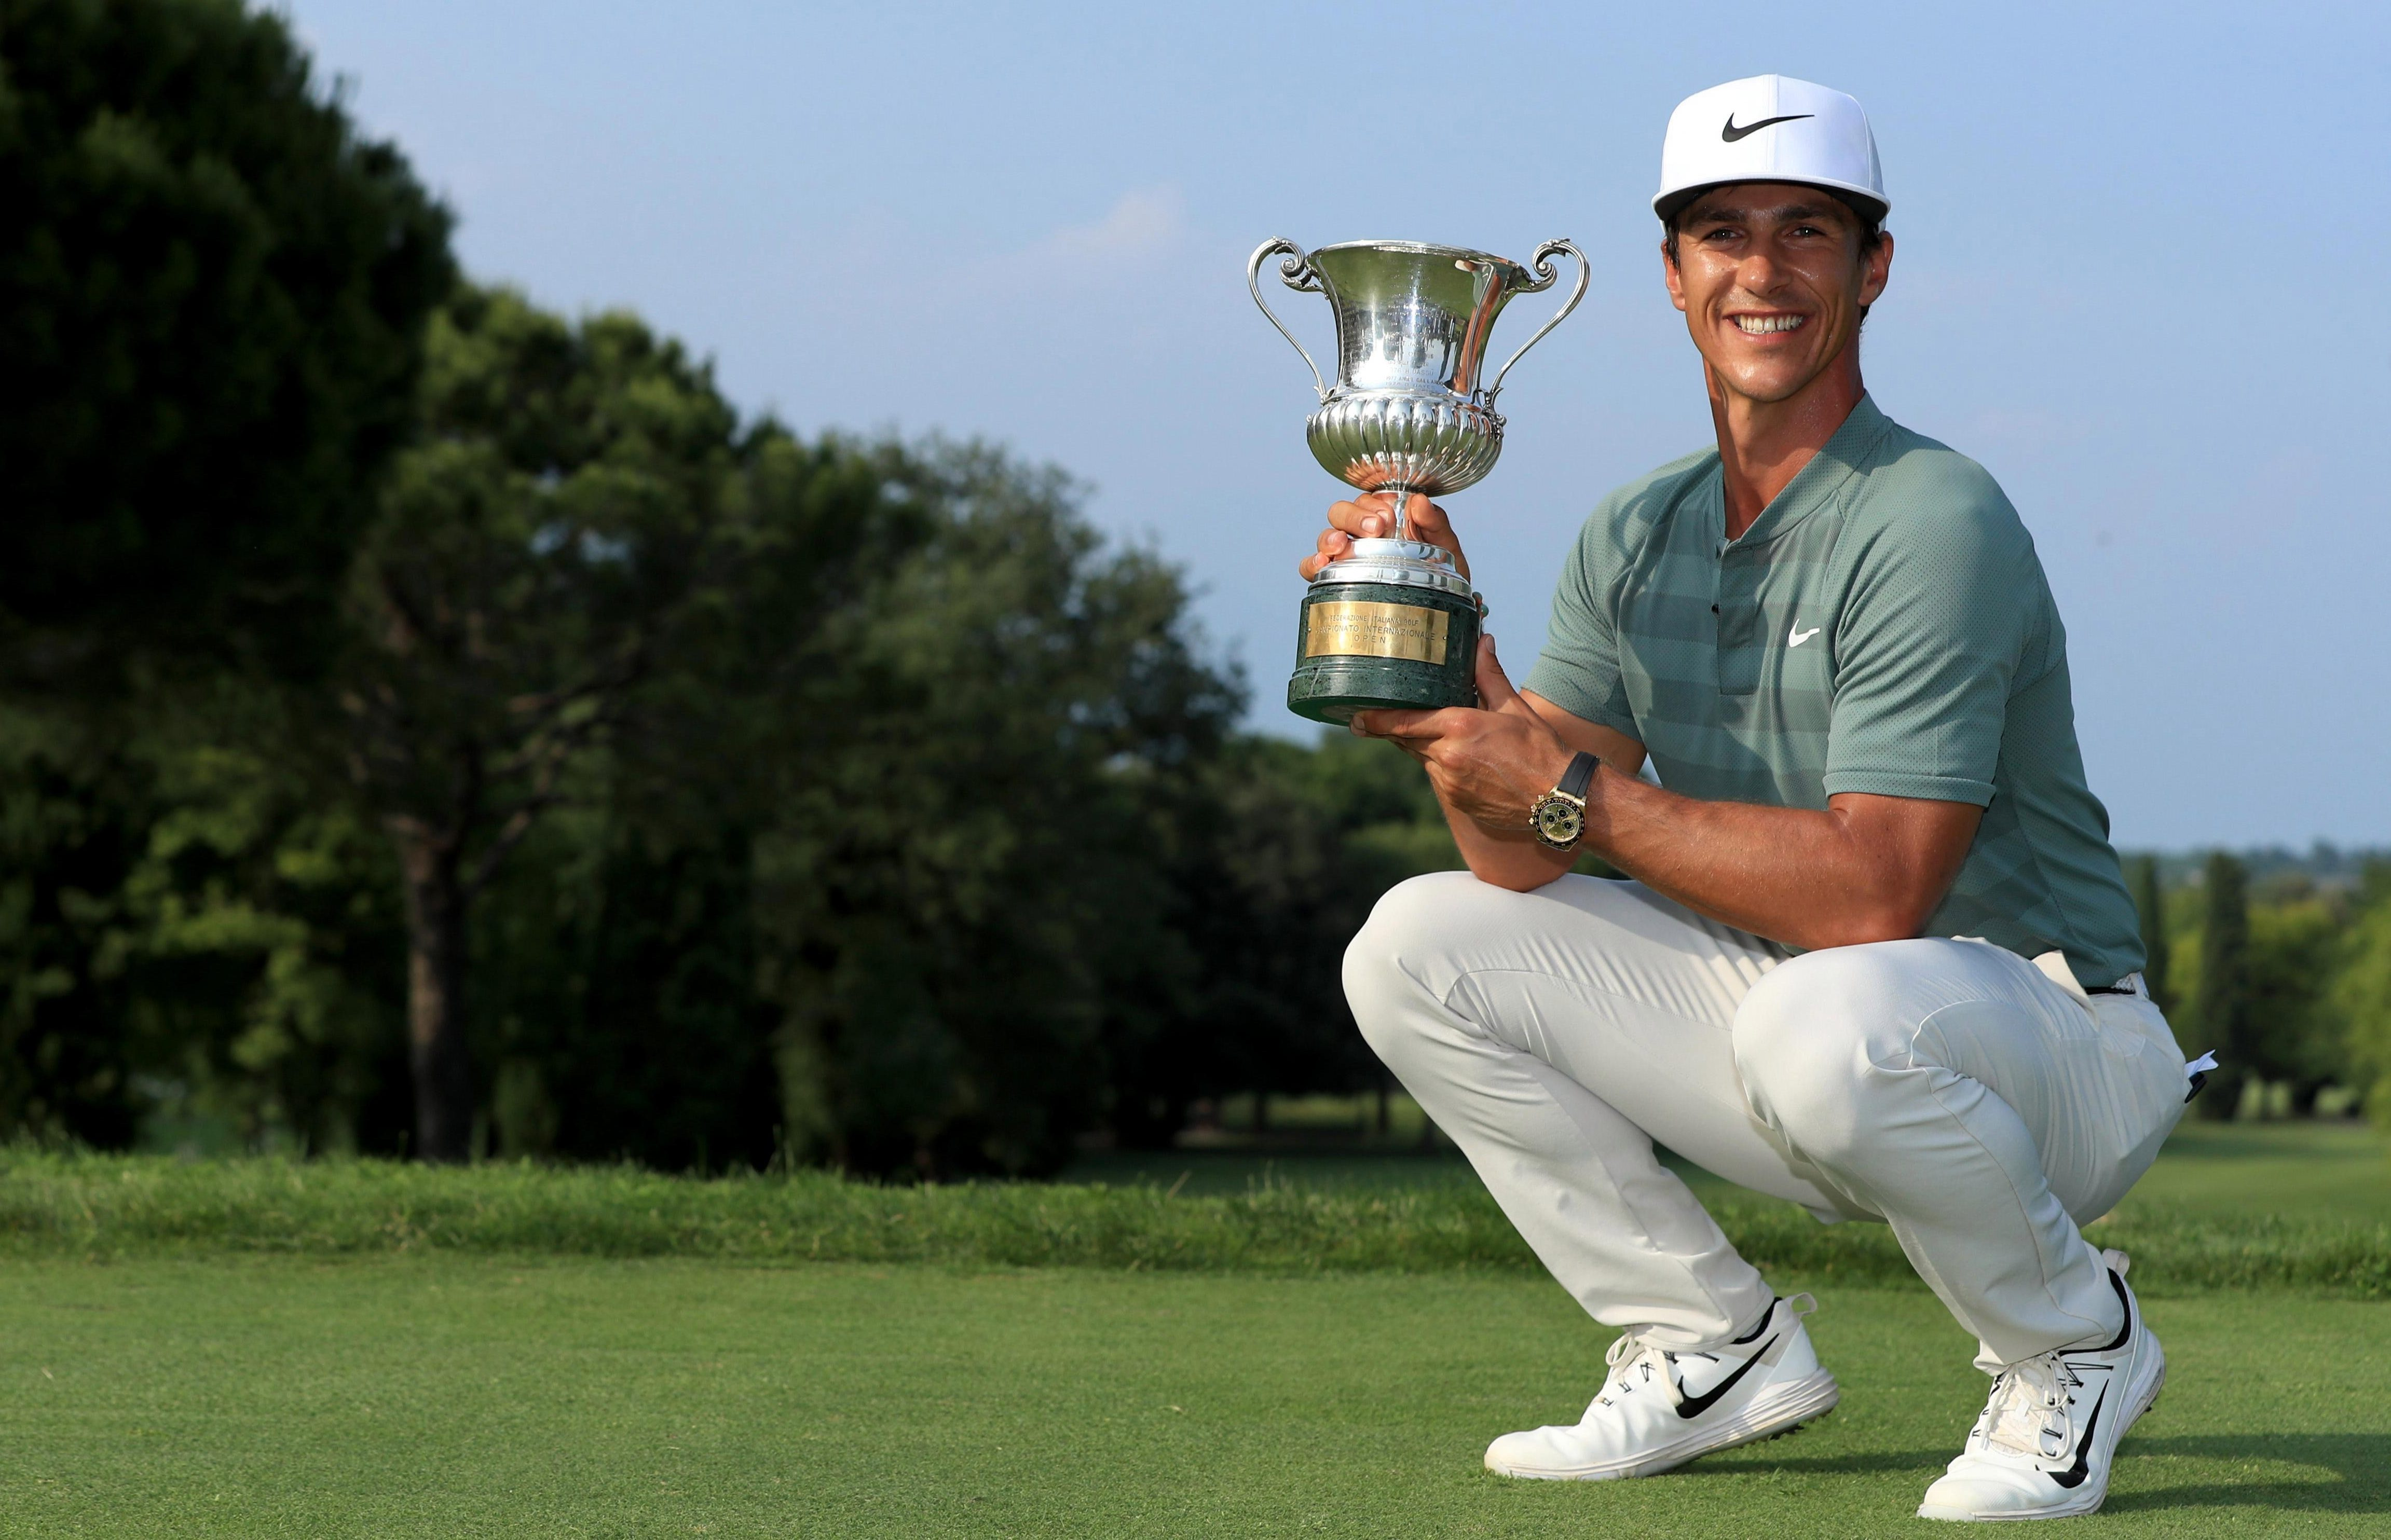 The most recent of Olesen's five European Tour wins came at this years Italian Open